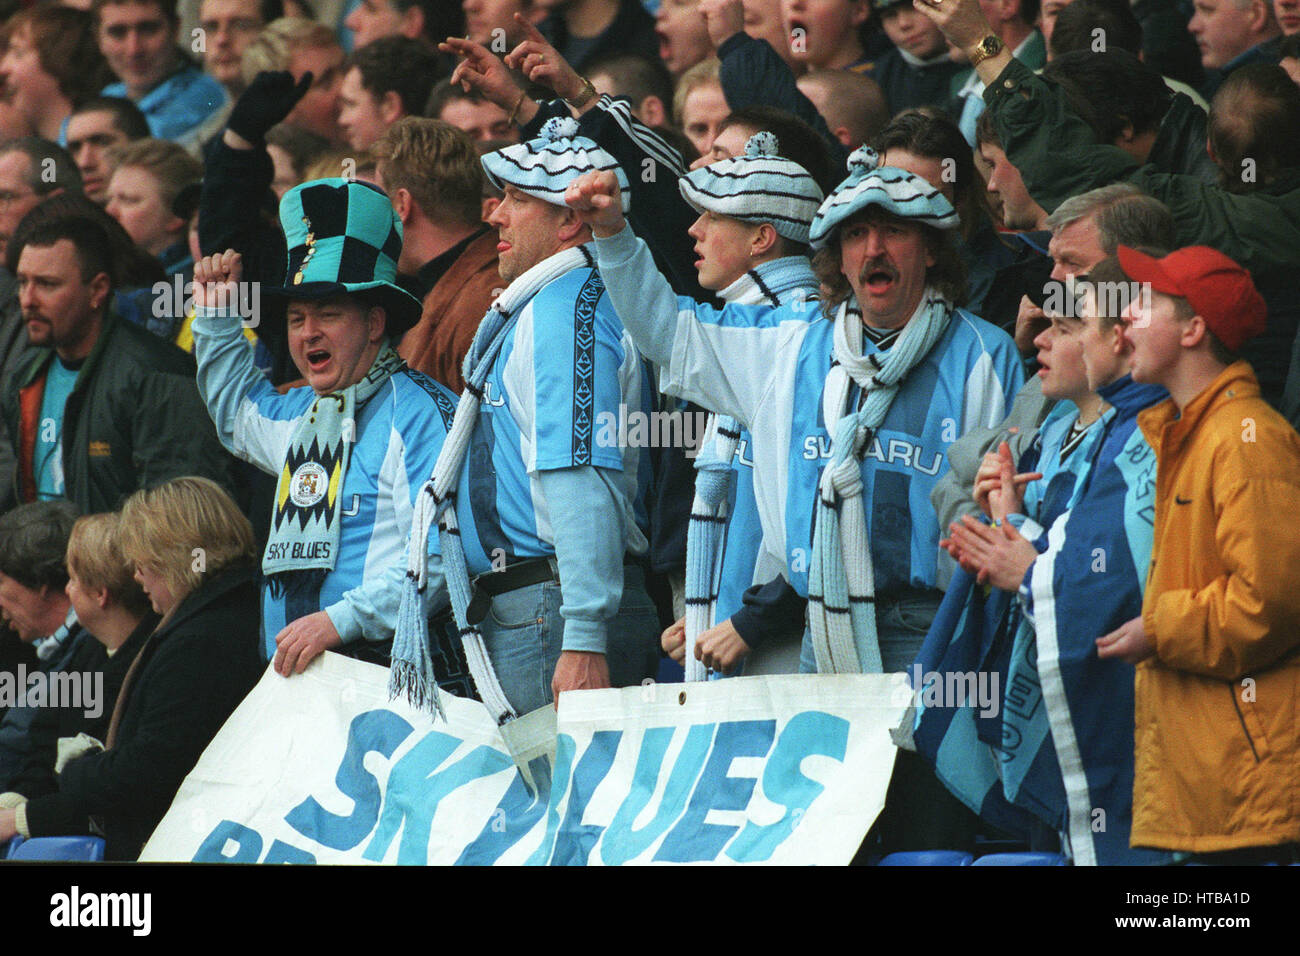 THE MAD HATTER COVENTRY FAN EVERTON V COVENTRY 15 February 1999 - Stock Image